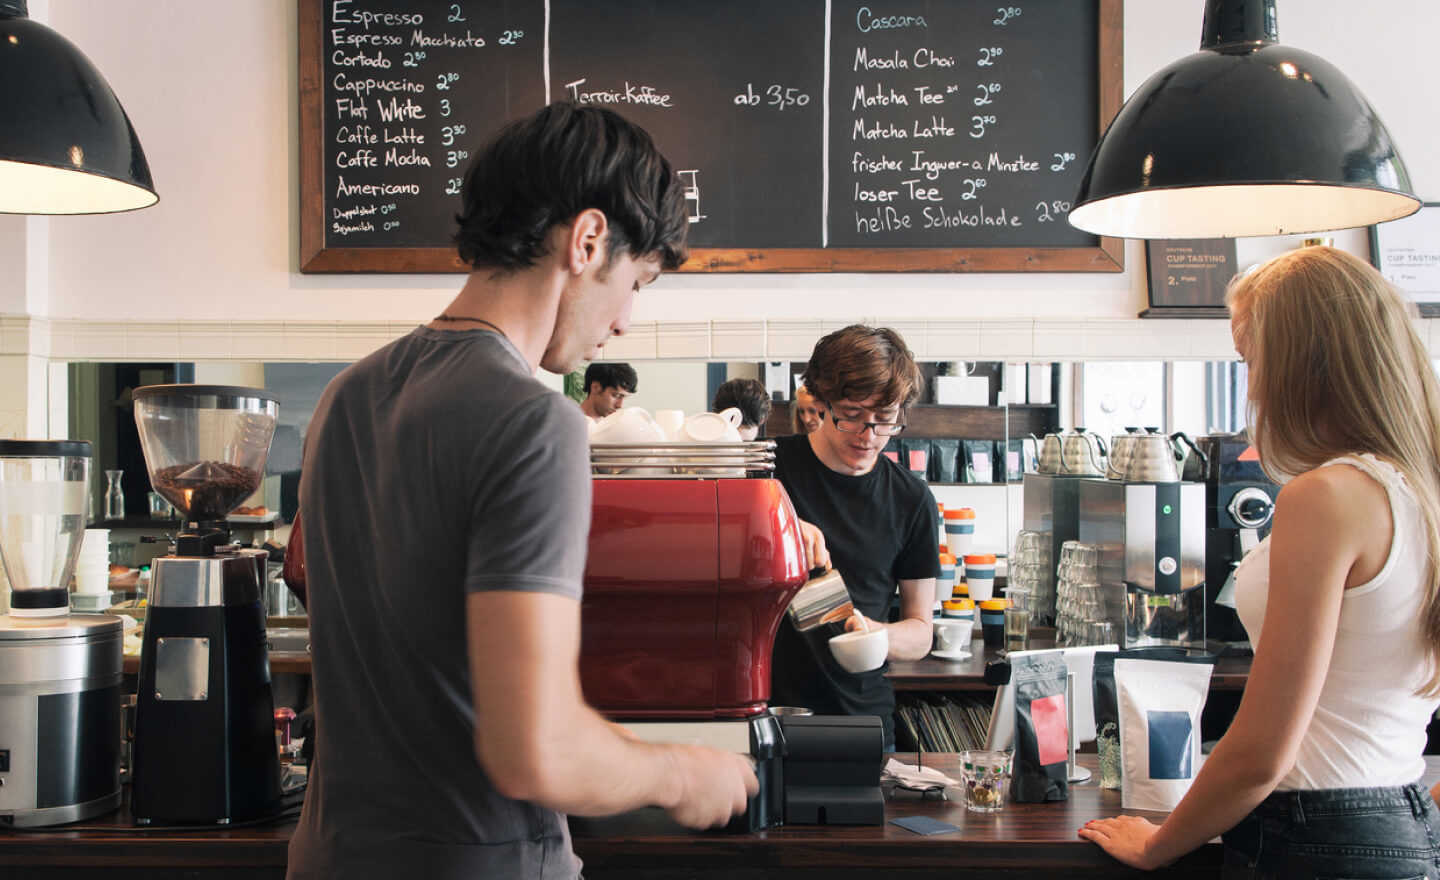 Two people buying coffee from a barista